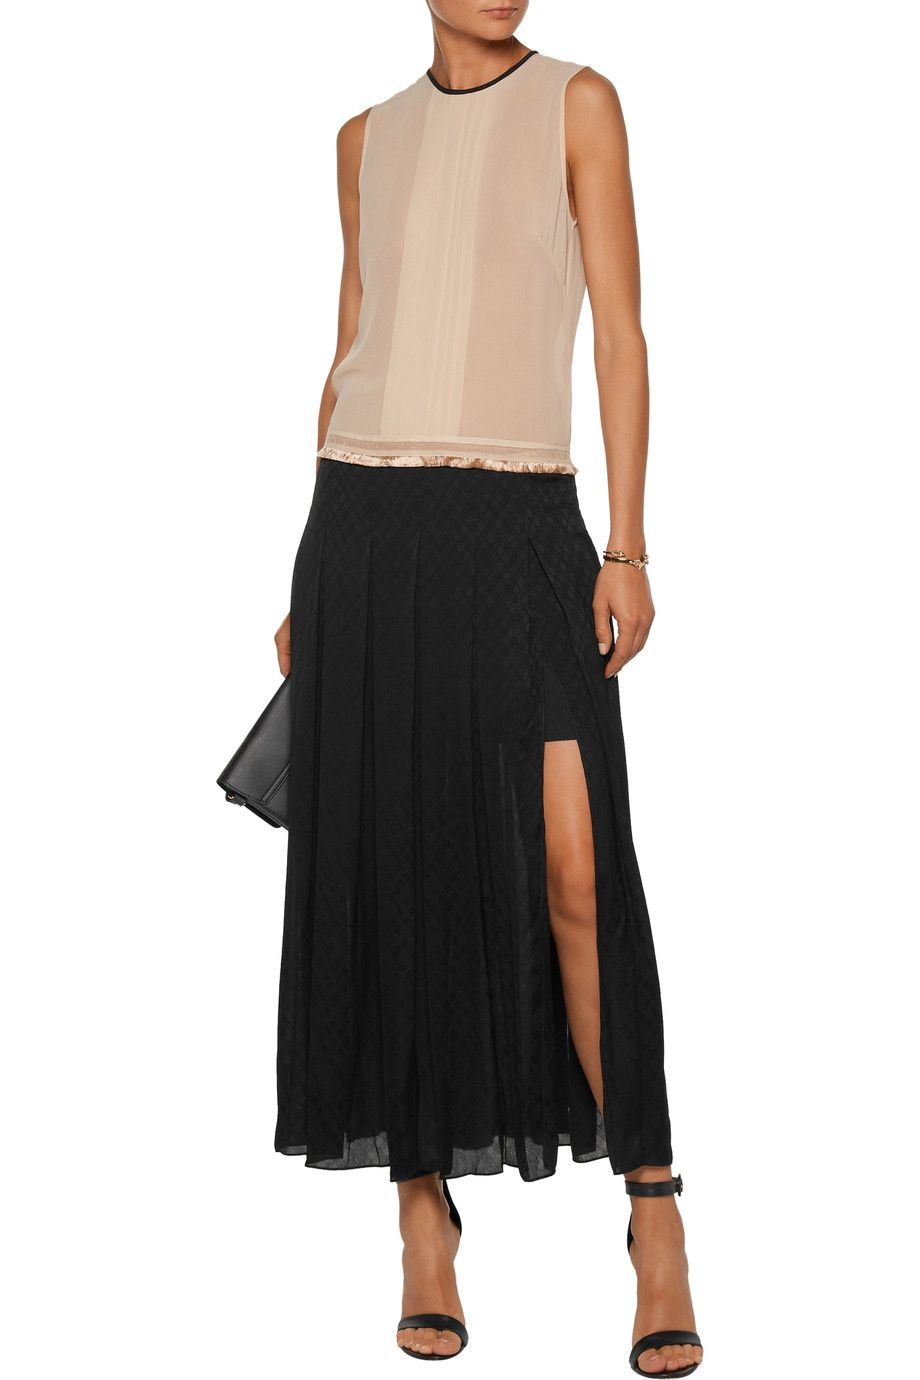 Sandro Woman Hanae Pintucked Pleated Georgette And Jacquard Maxi Dress Black Size 3 Sandro 1aJZM9bHpw